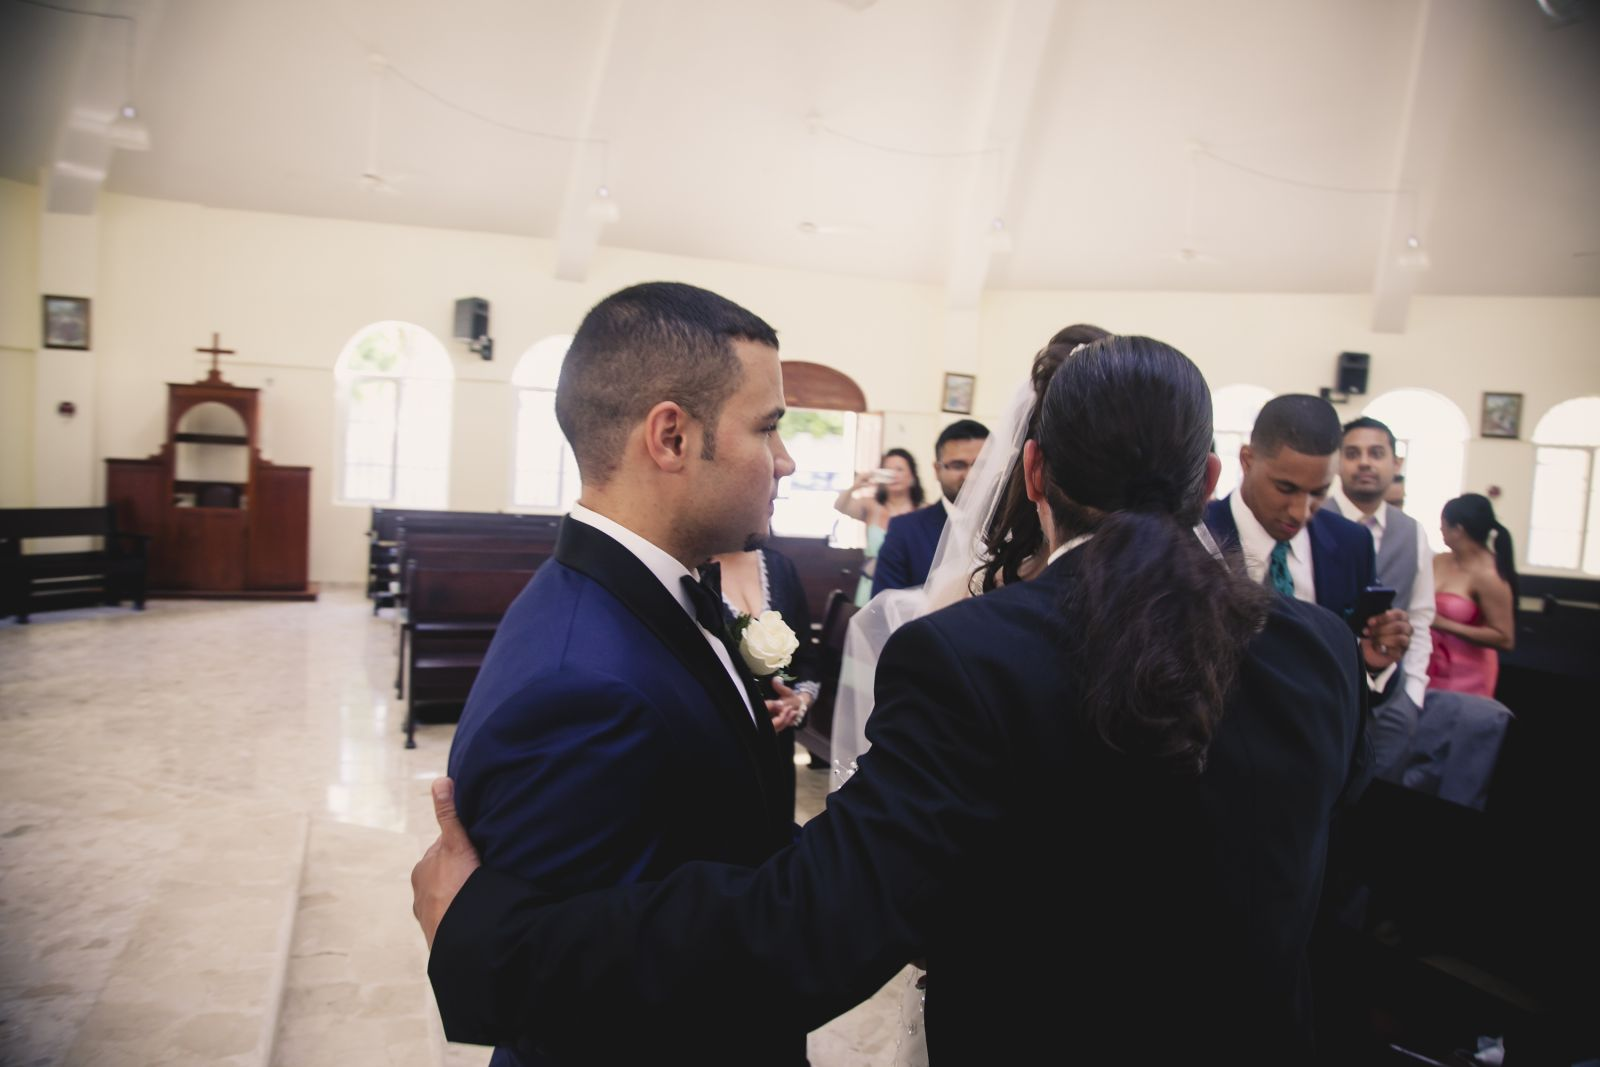 My godfather giving me away- my dad did not come to my wedding